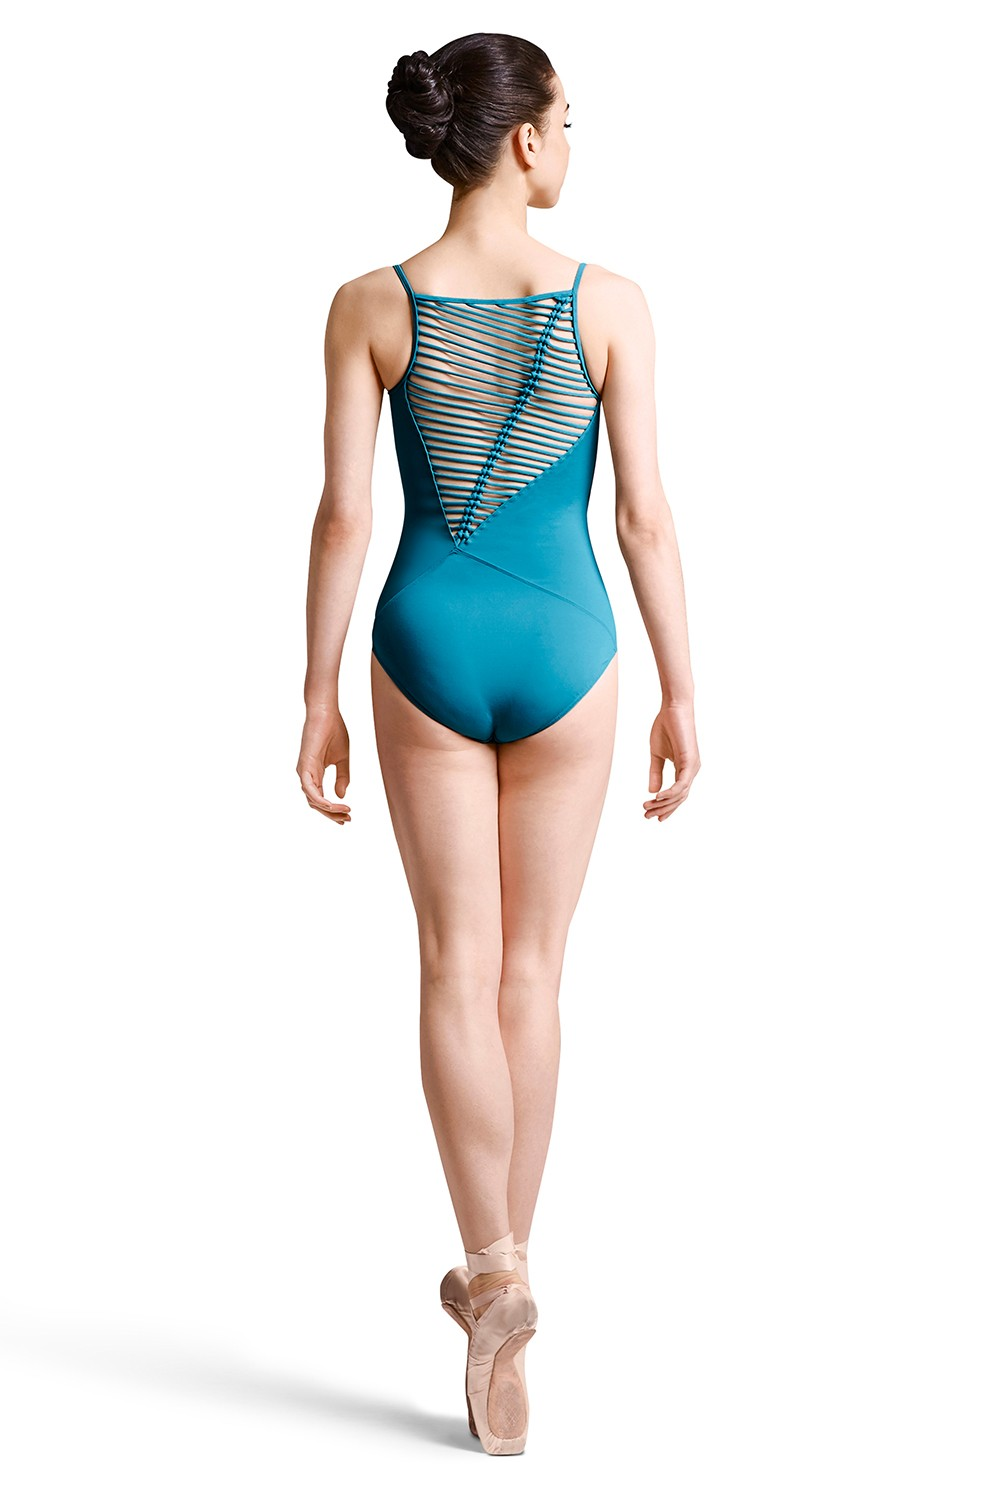 Rouleaux Asymmetrical Cami Leo Women's Dance Leotards